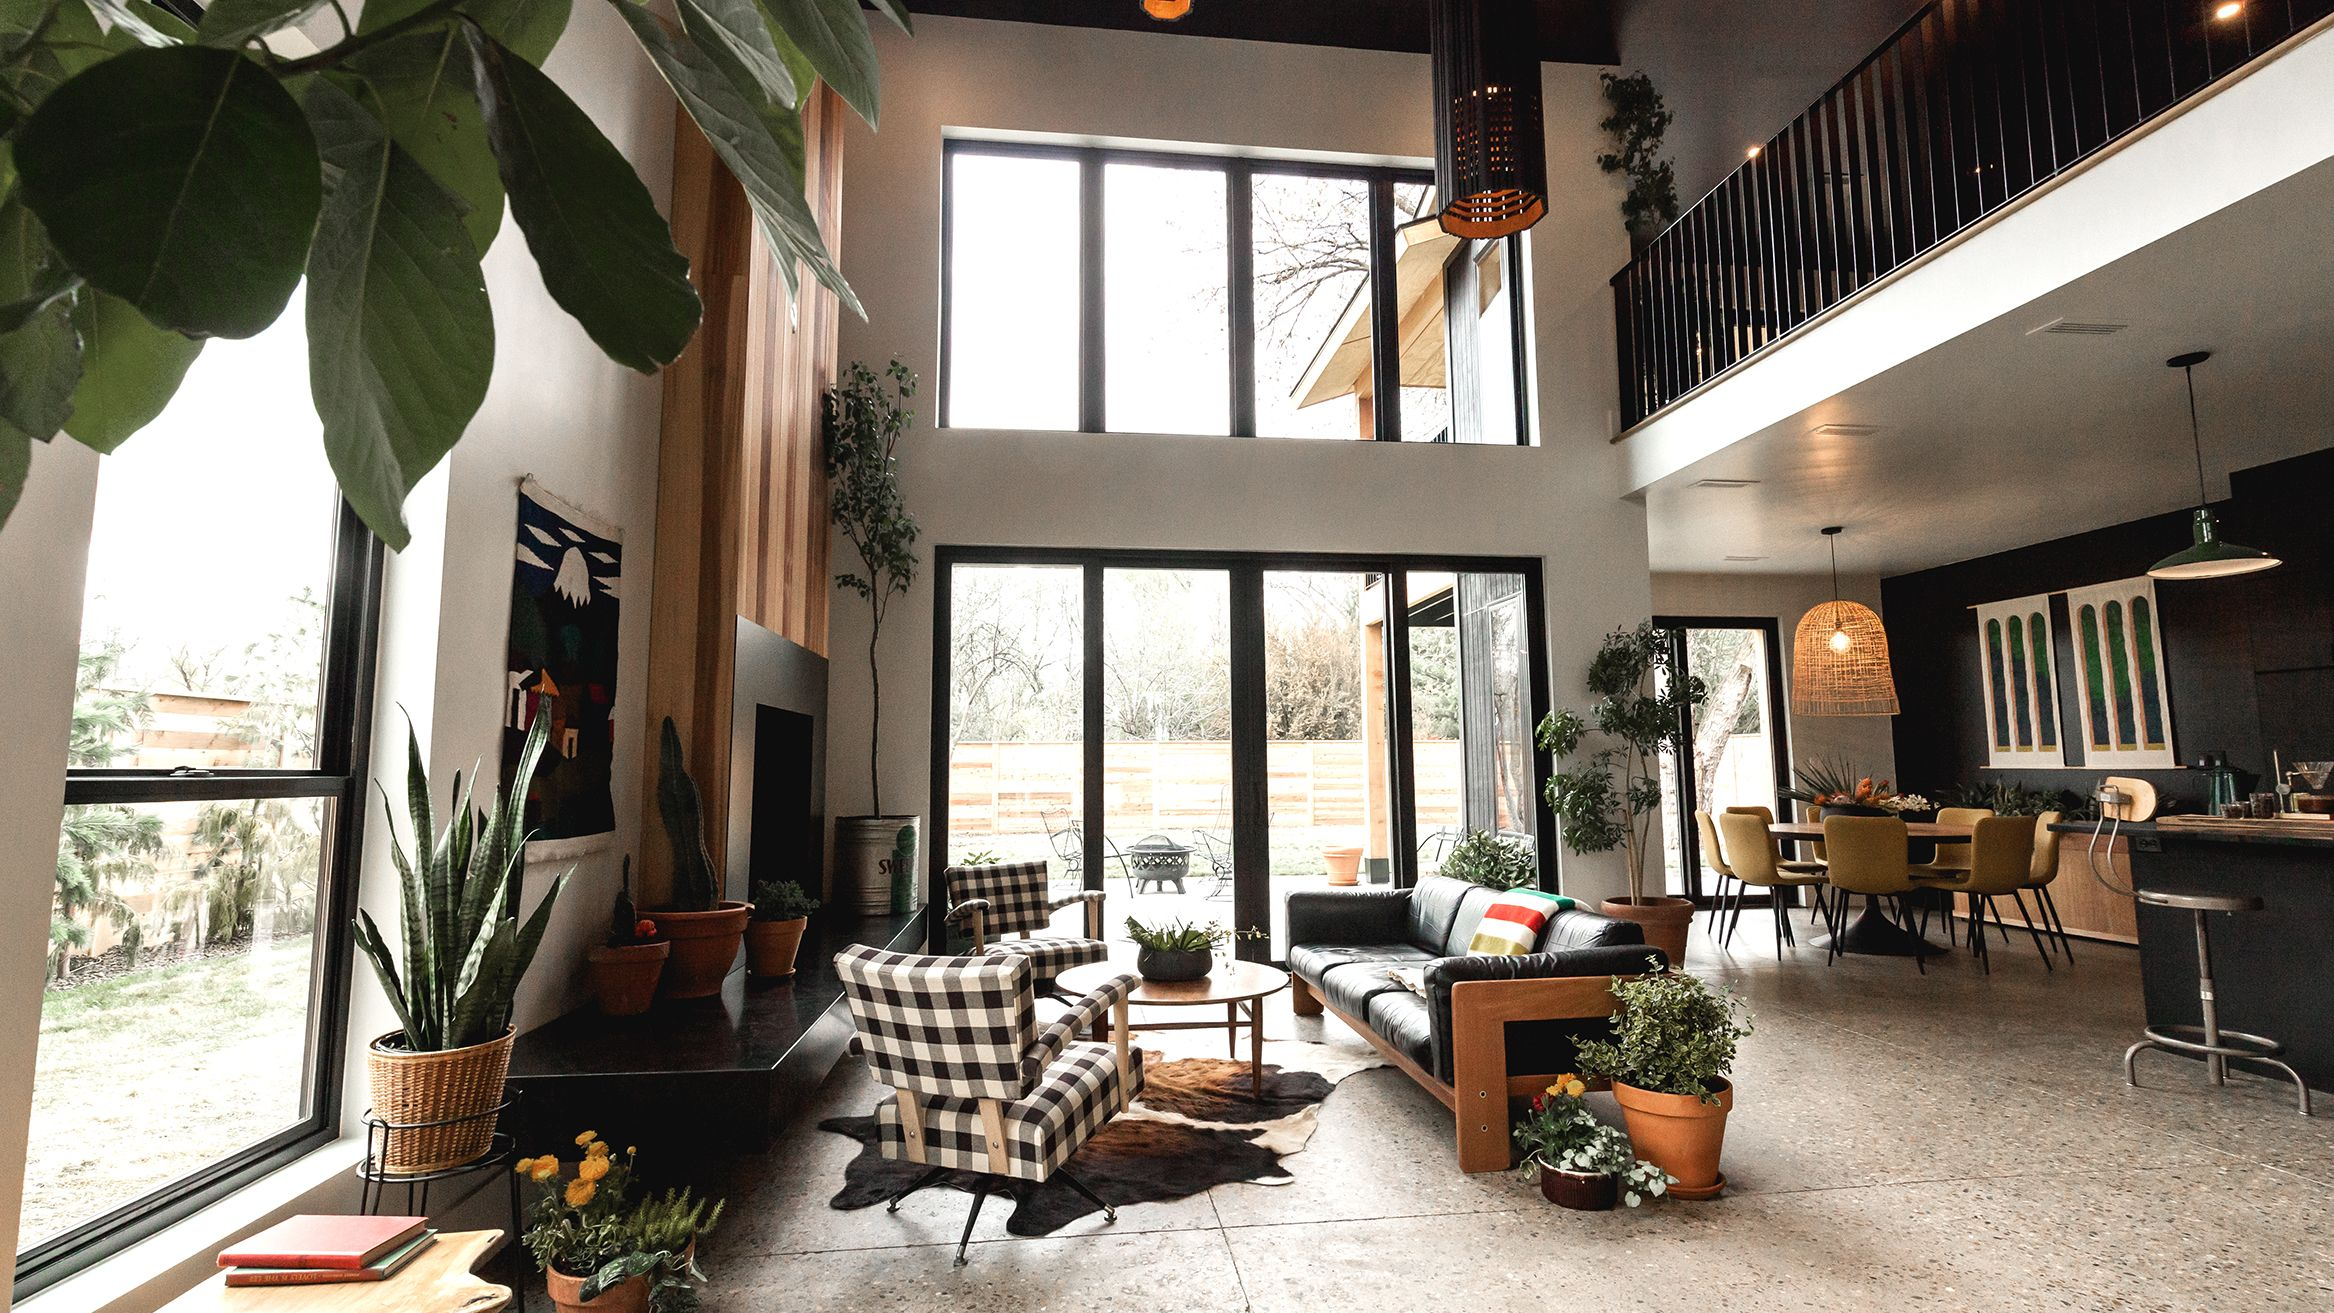 Timber And Love Design And Build Blog Boise Boys S01 E06 The River House Boise Boys River House Home